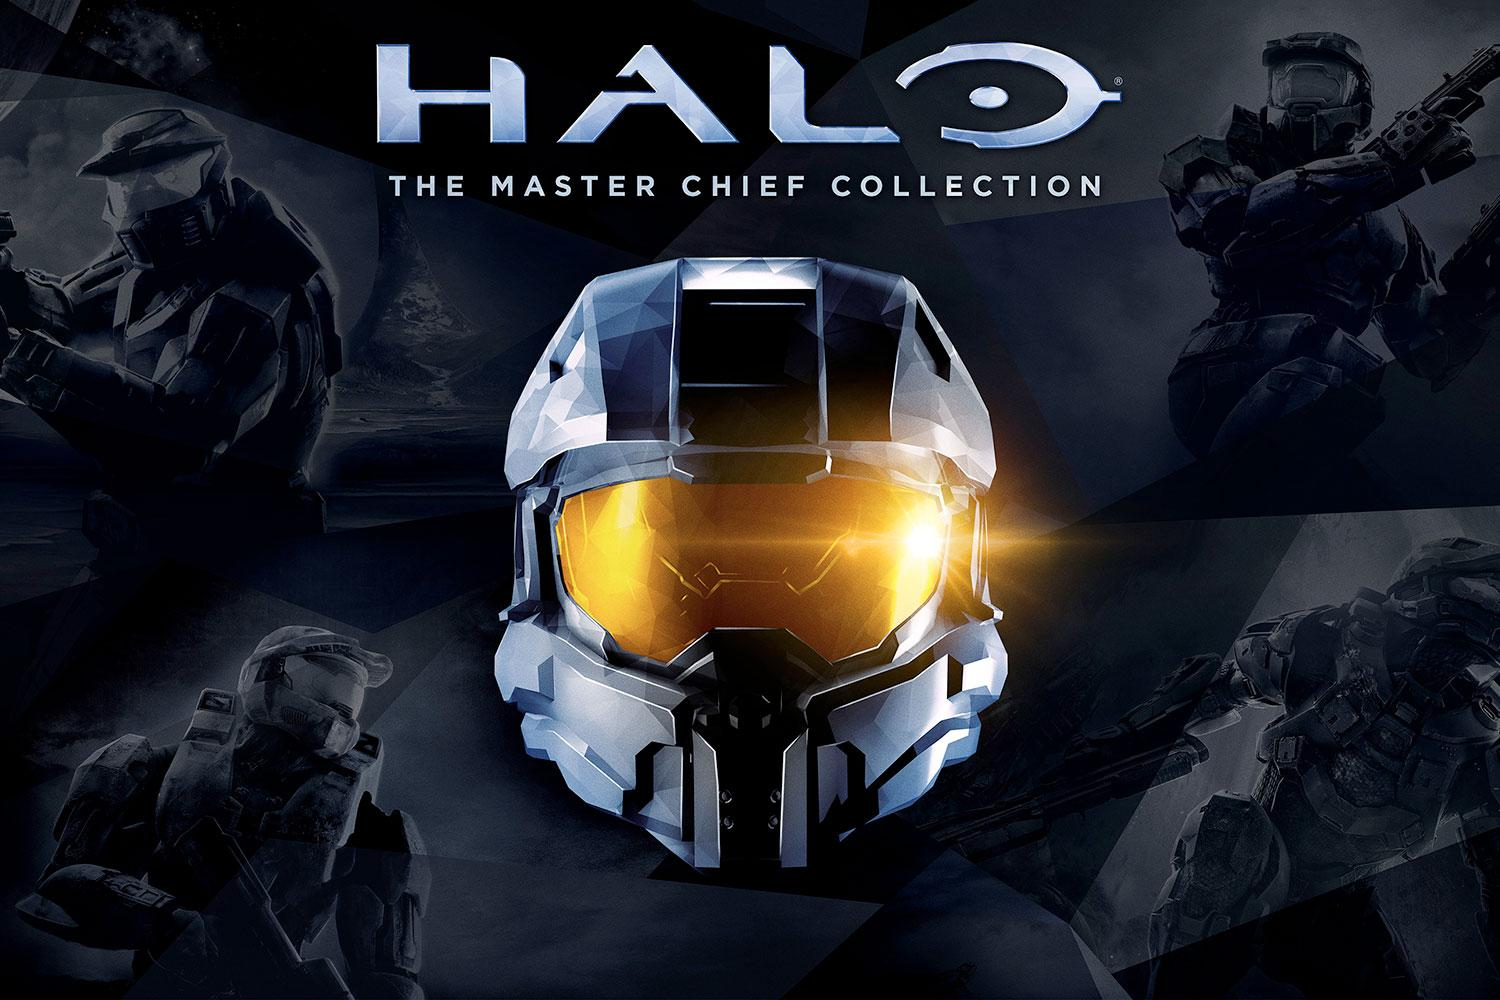 Впечатления от Halo: Master Chief Collection. - Изображение 1